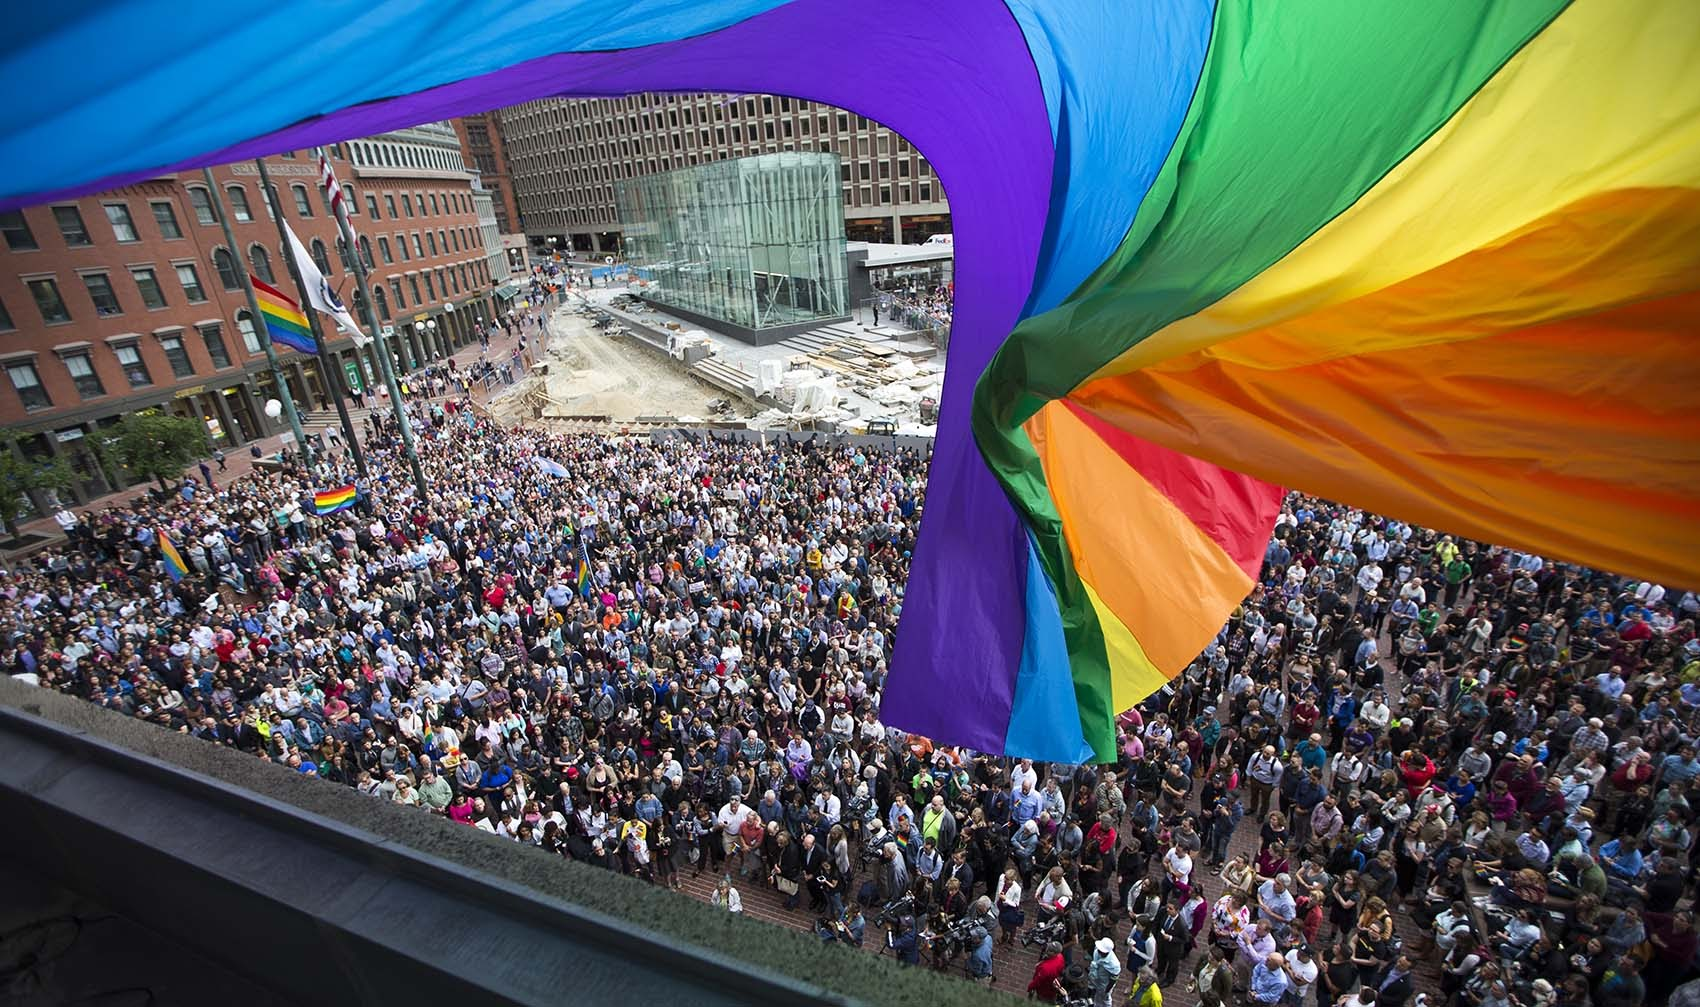 Hundreds gathered on City Hall Plaza in honor of those killed at the Pulse Dance Club in Orlando. (Jesse Costa/WBUR)